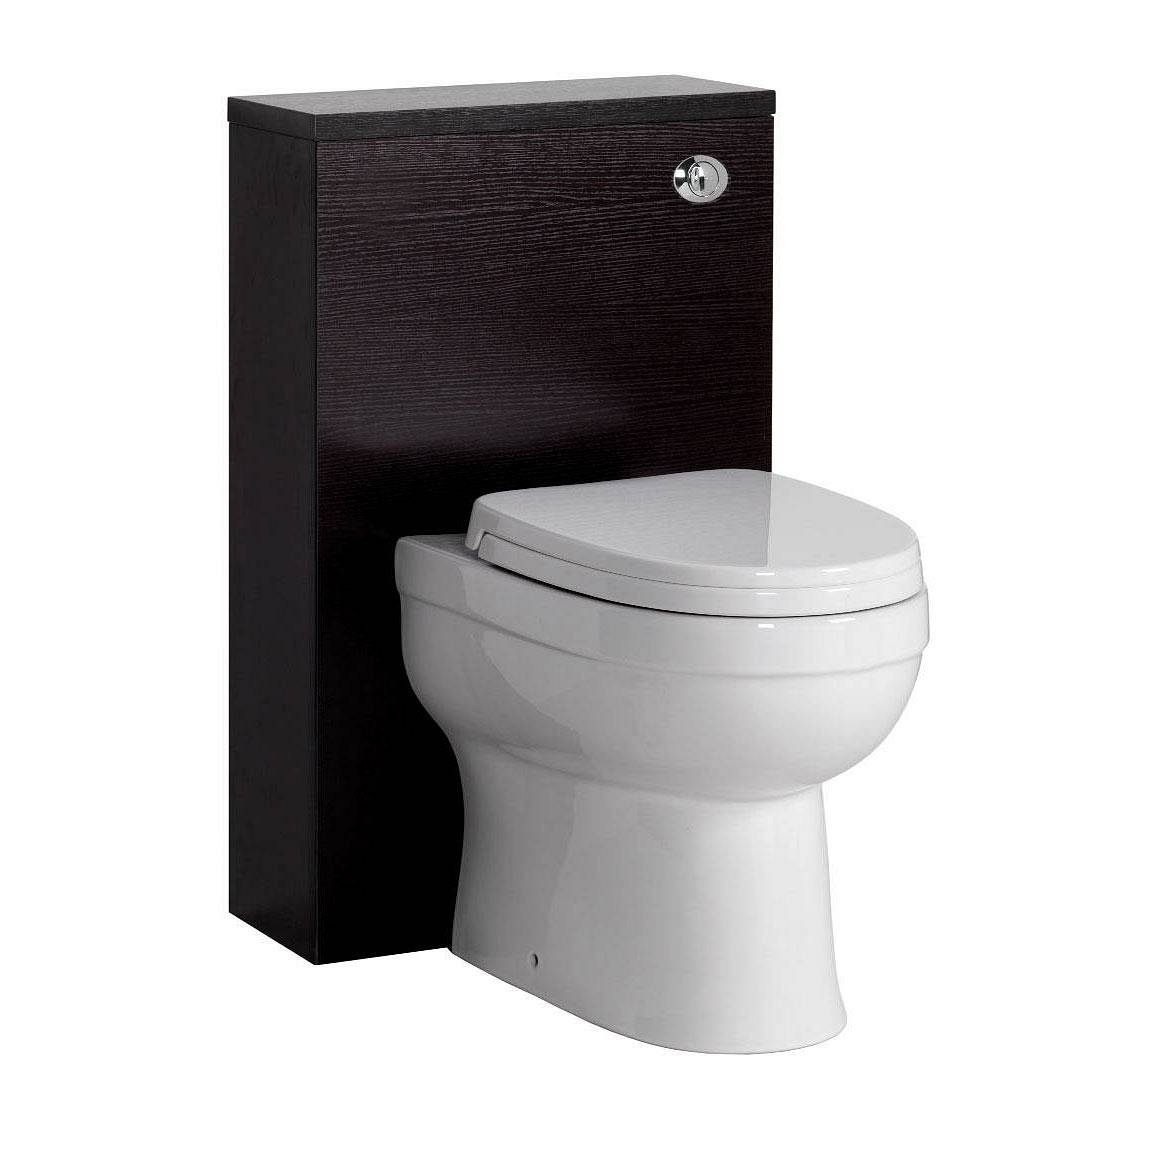 Image of Energy Back To Wall Toilet inc Seat & Slimline Wenge Unit